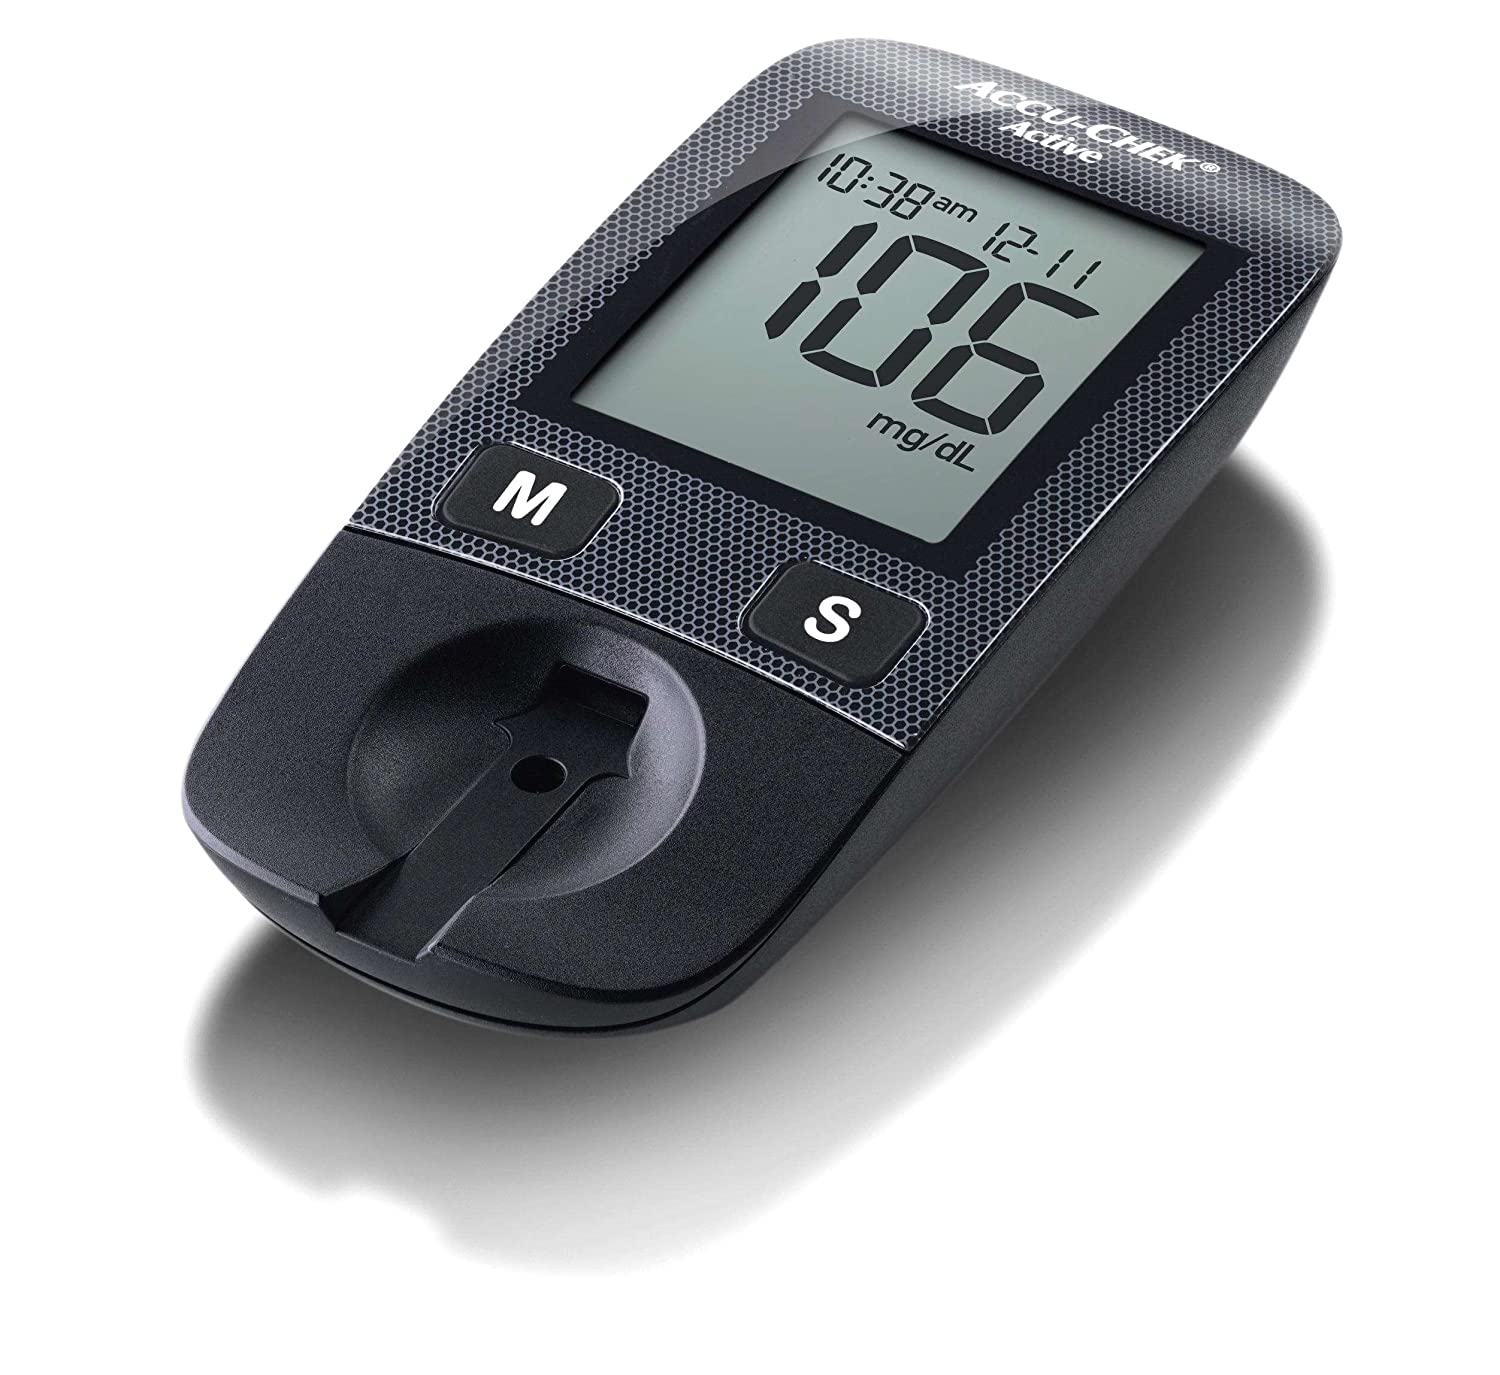 New Accu-Chek Active Blood Glucose Meter